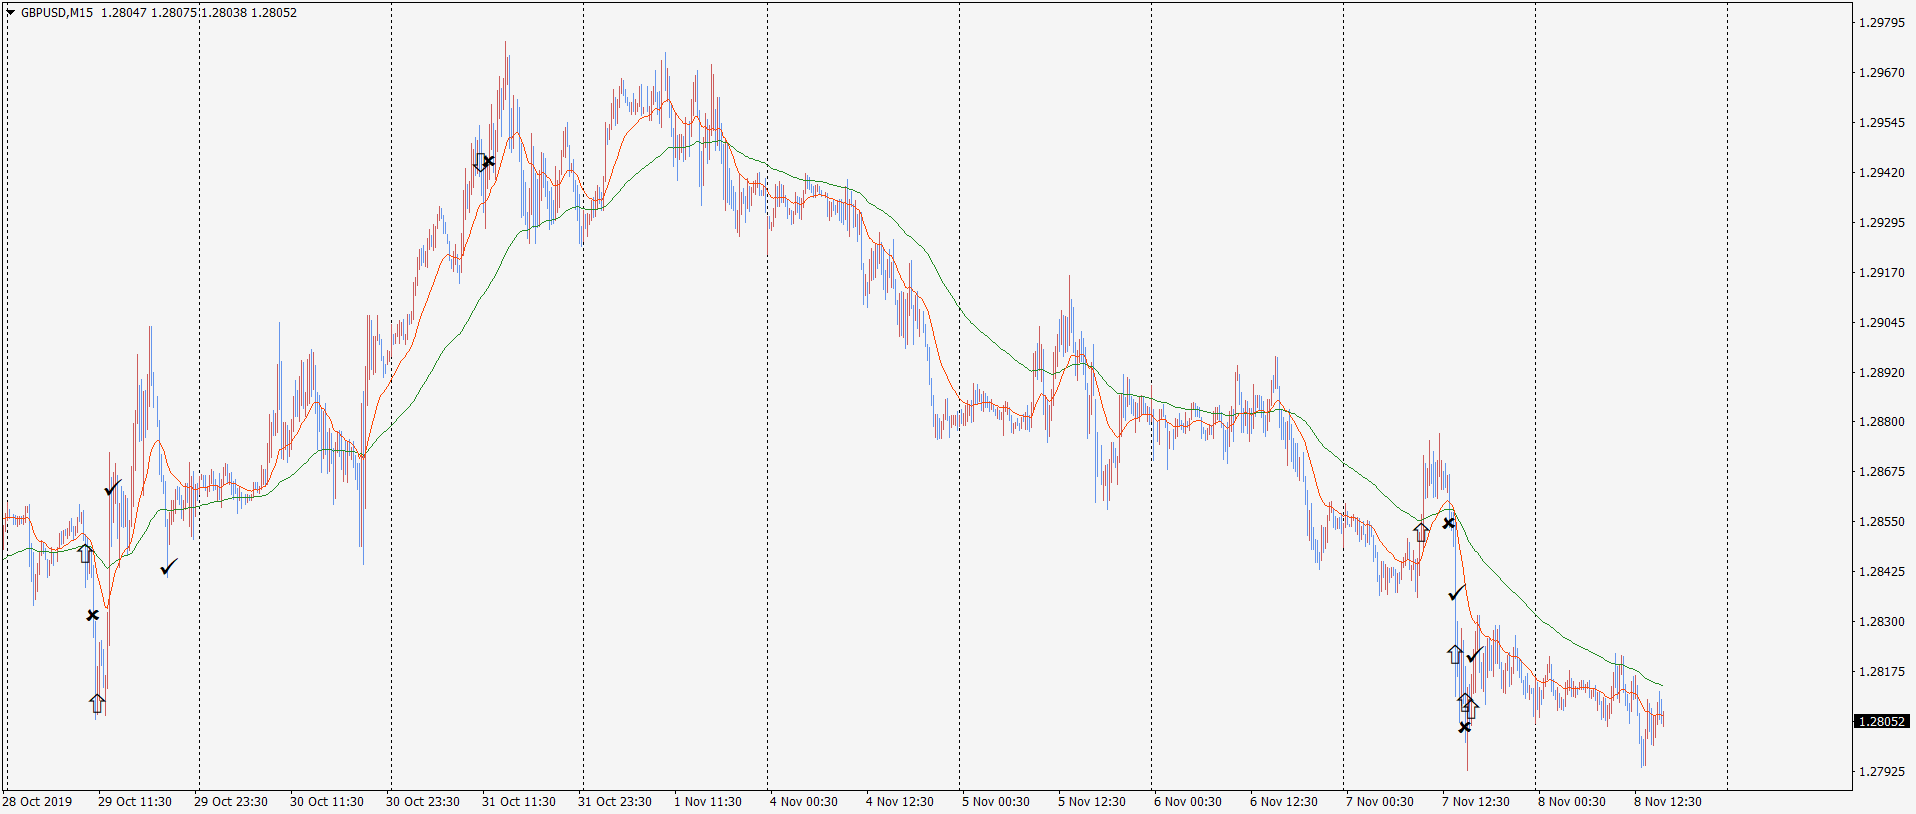 19-11-08-gbpusd-m15-tradexfin-limited.png